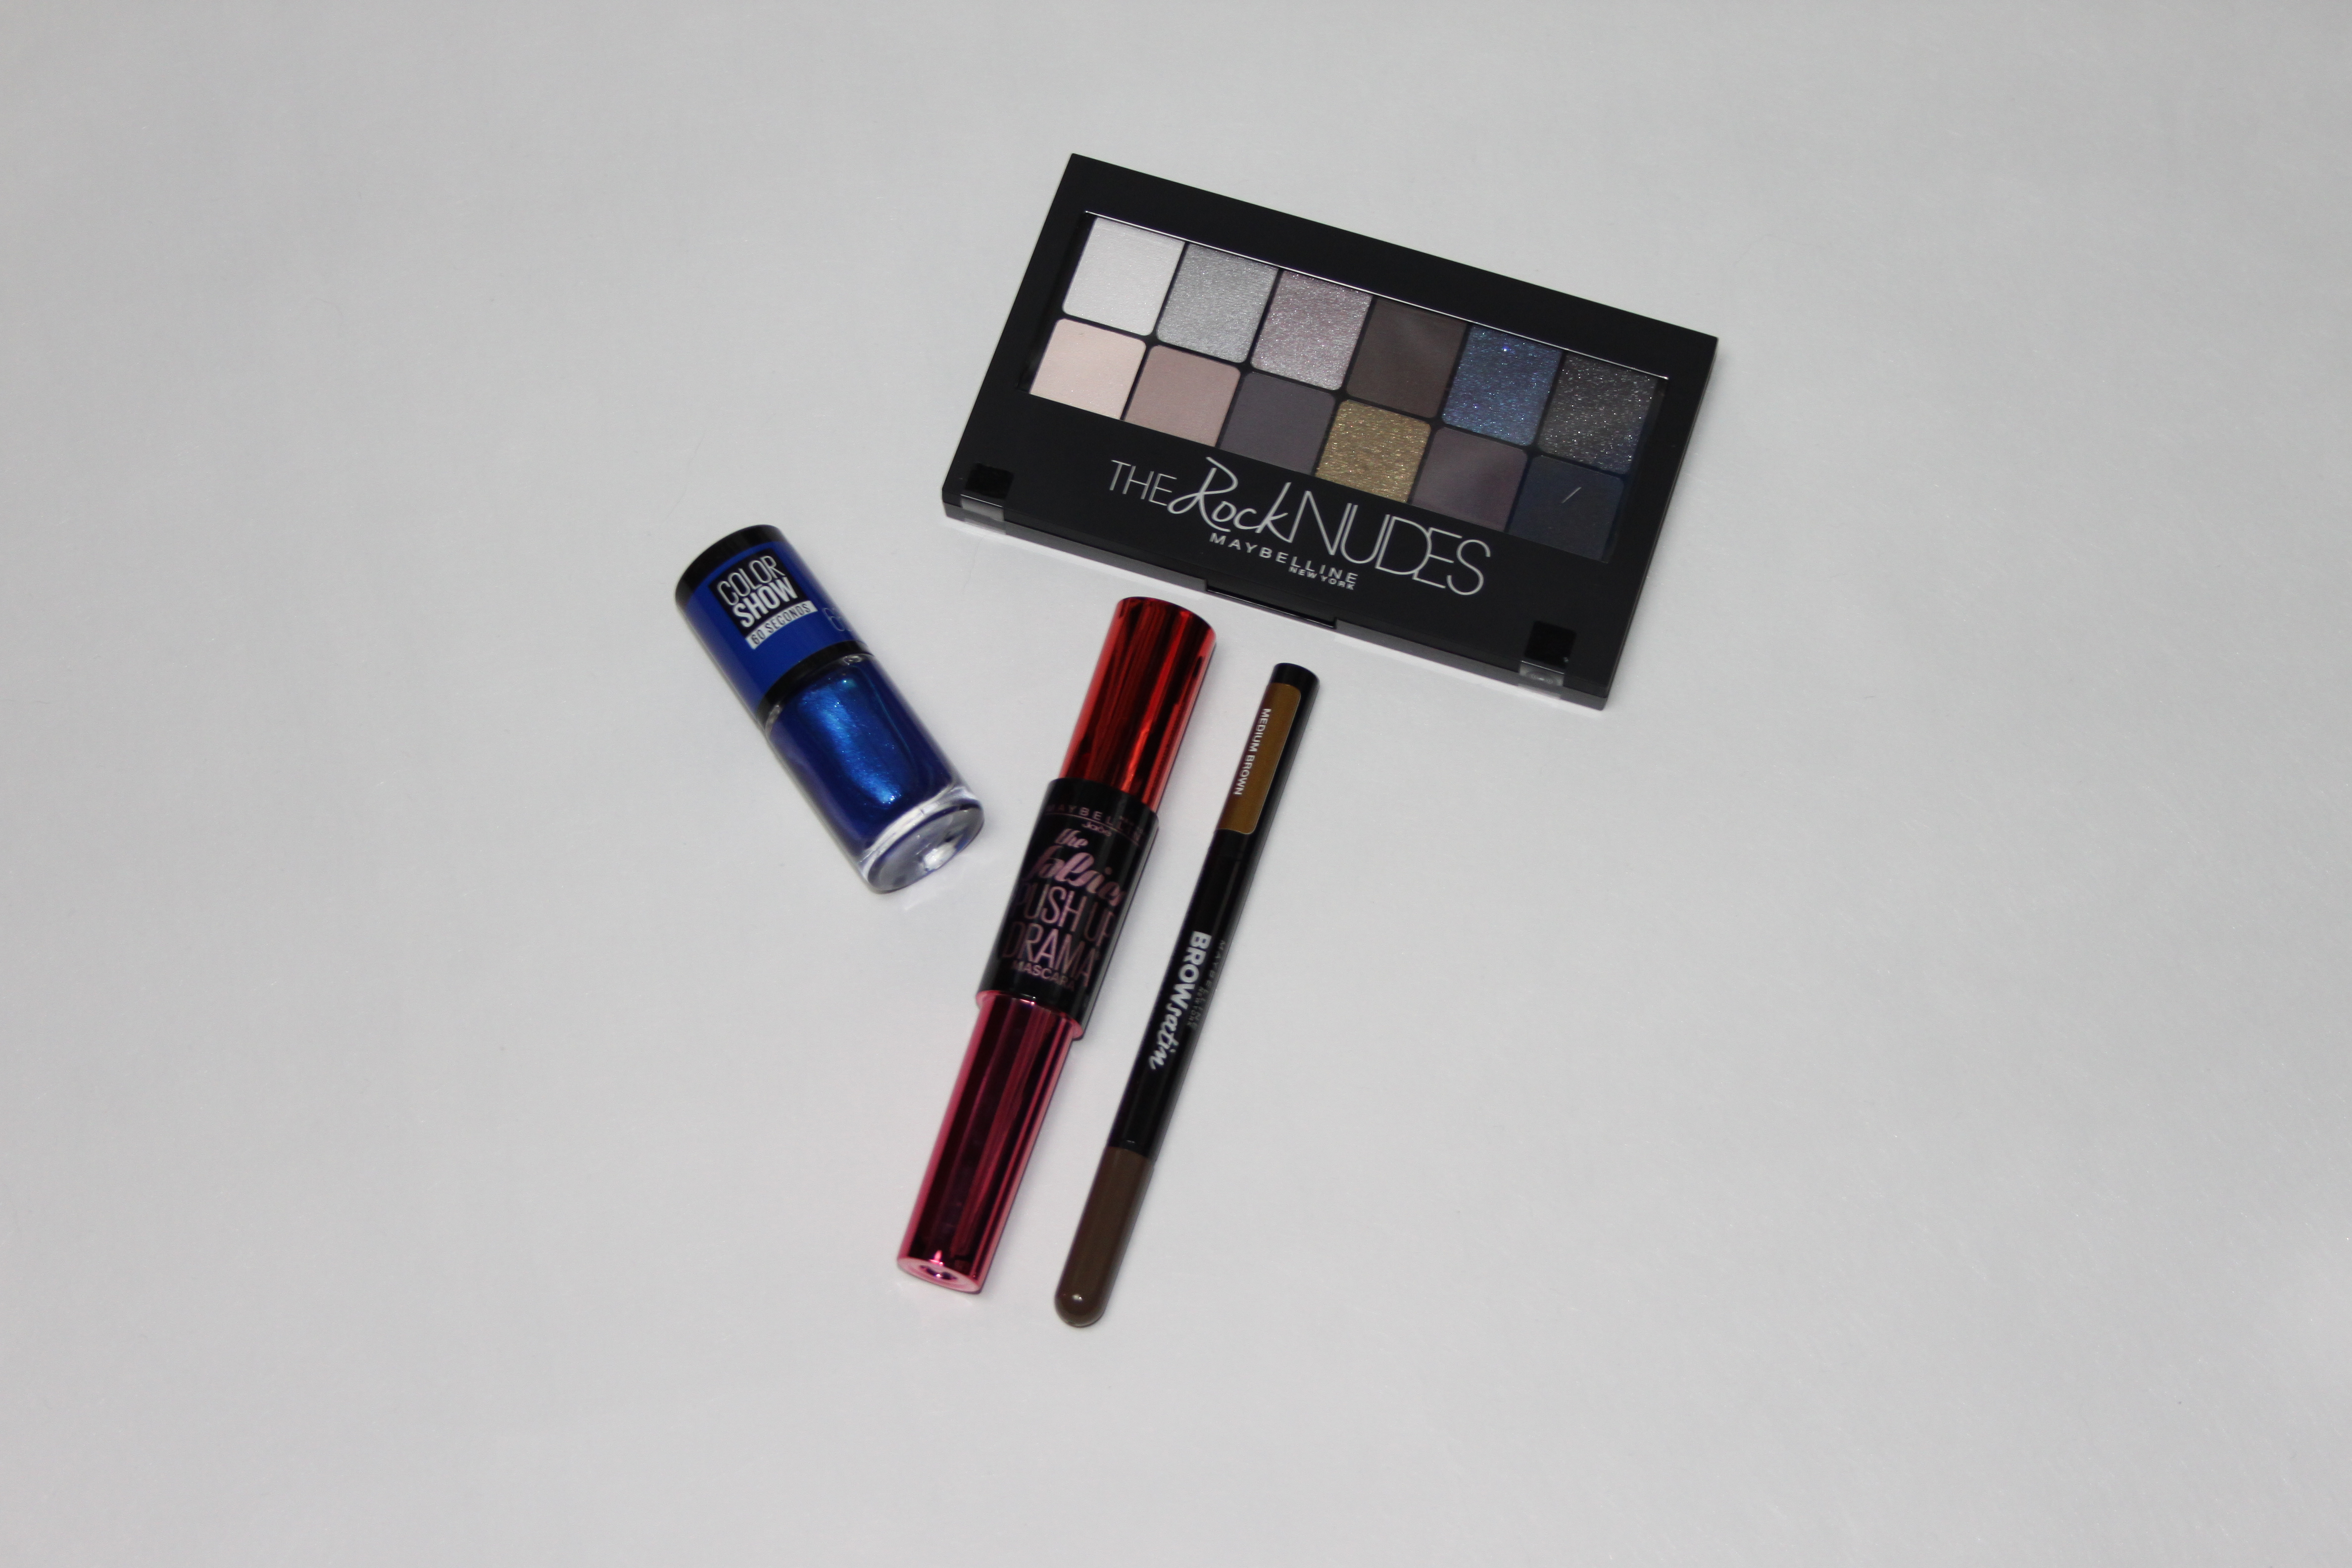 Maybelline IT-Look Box - Rock it out!